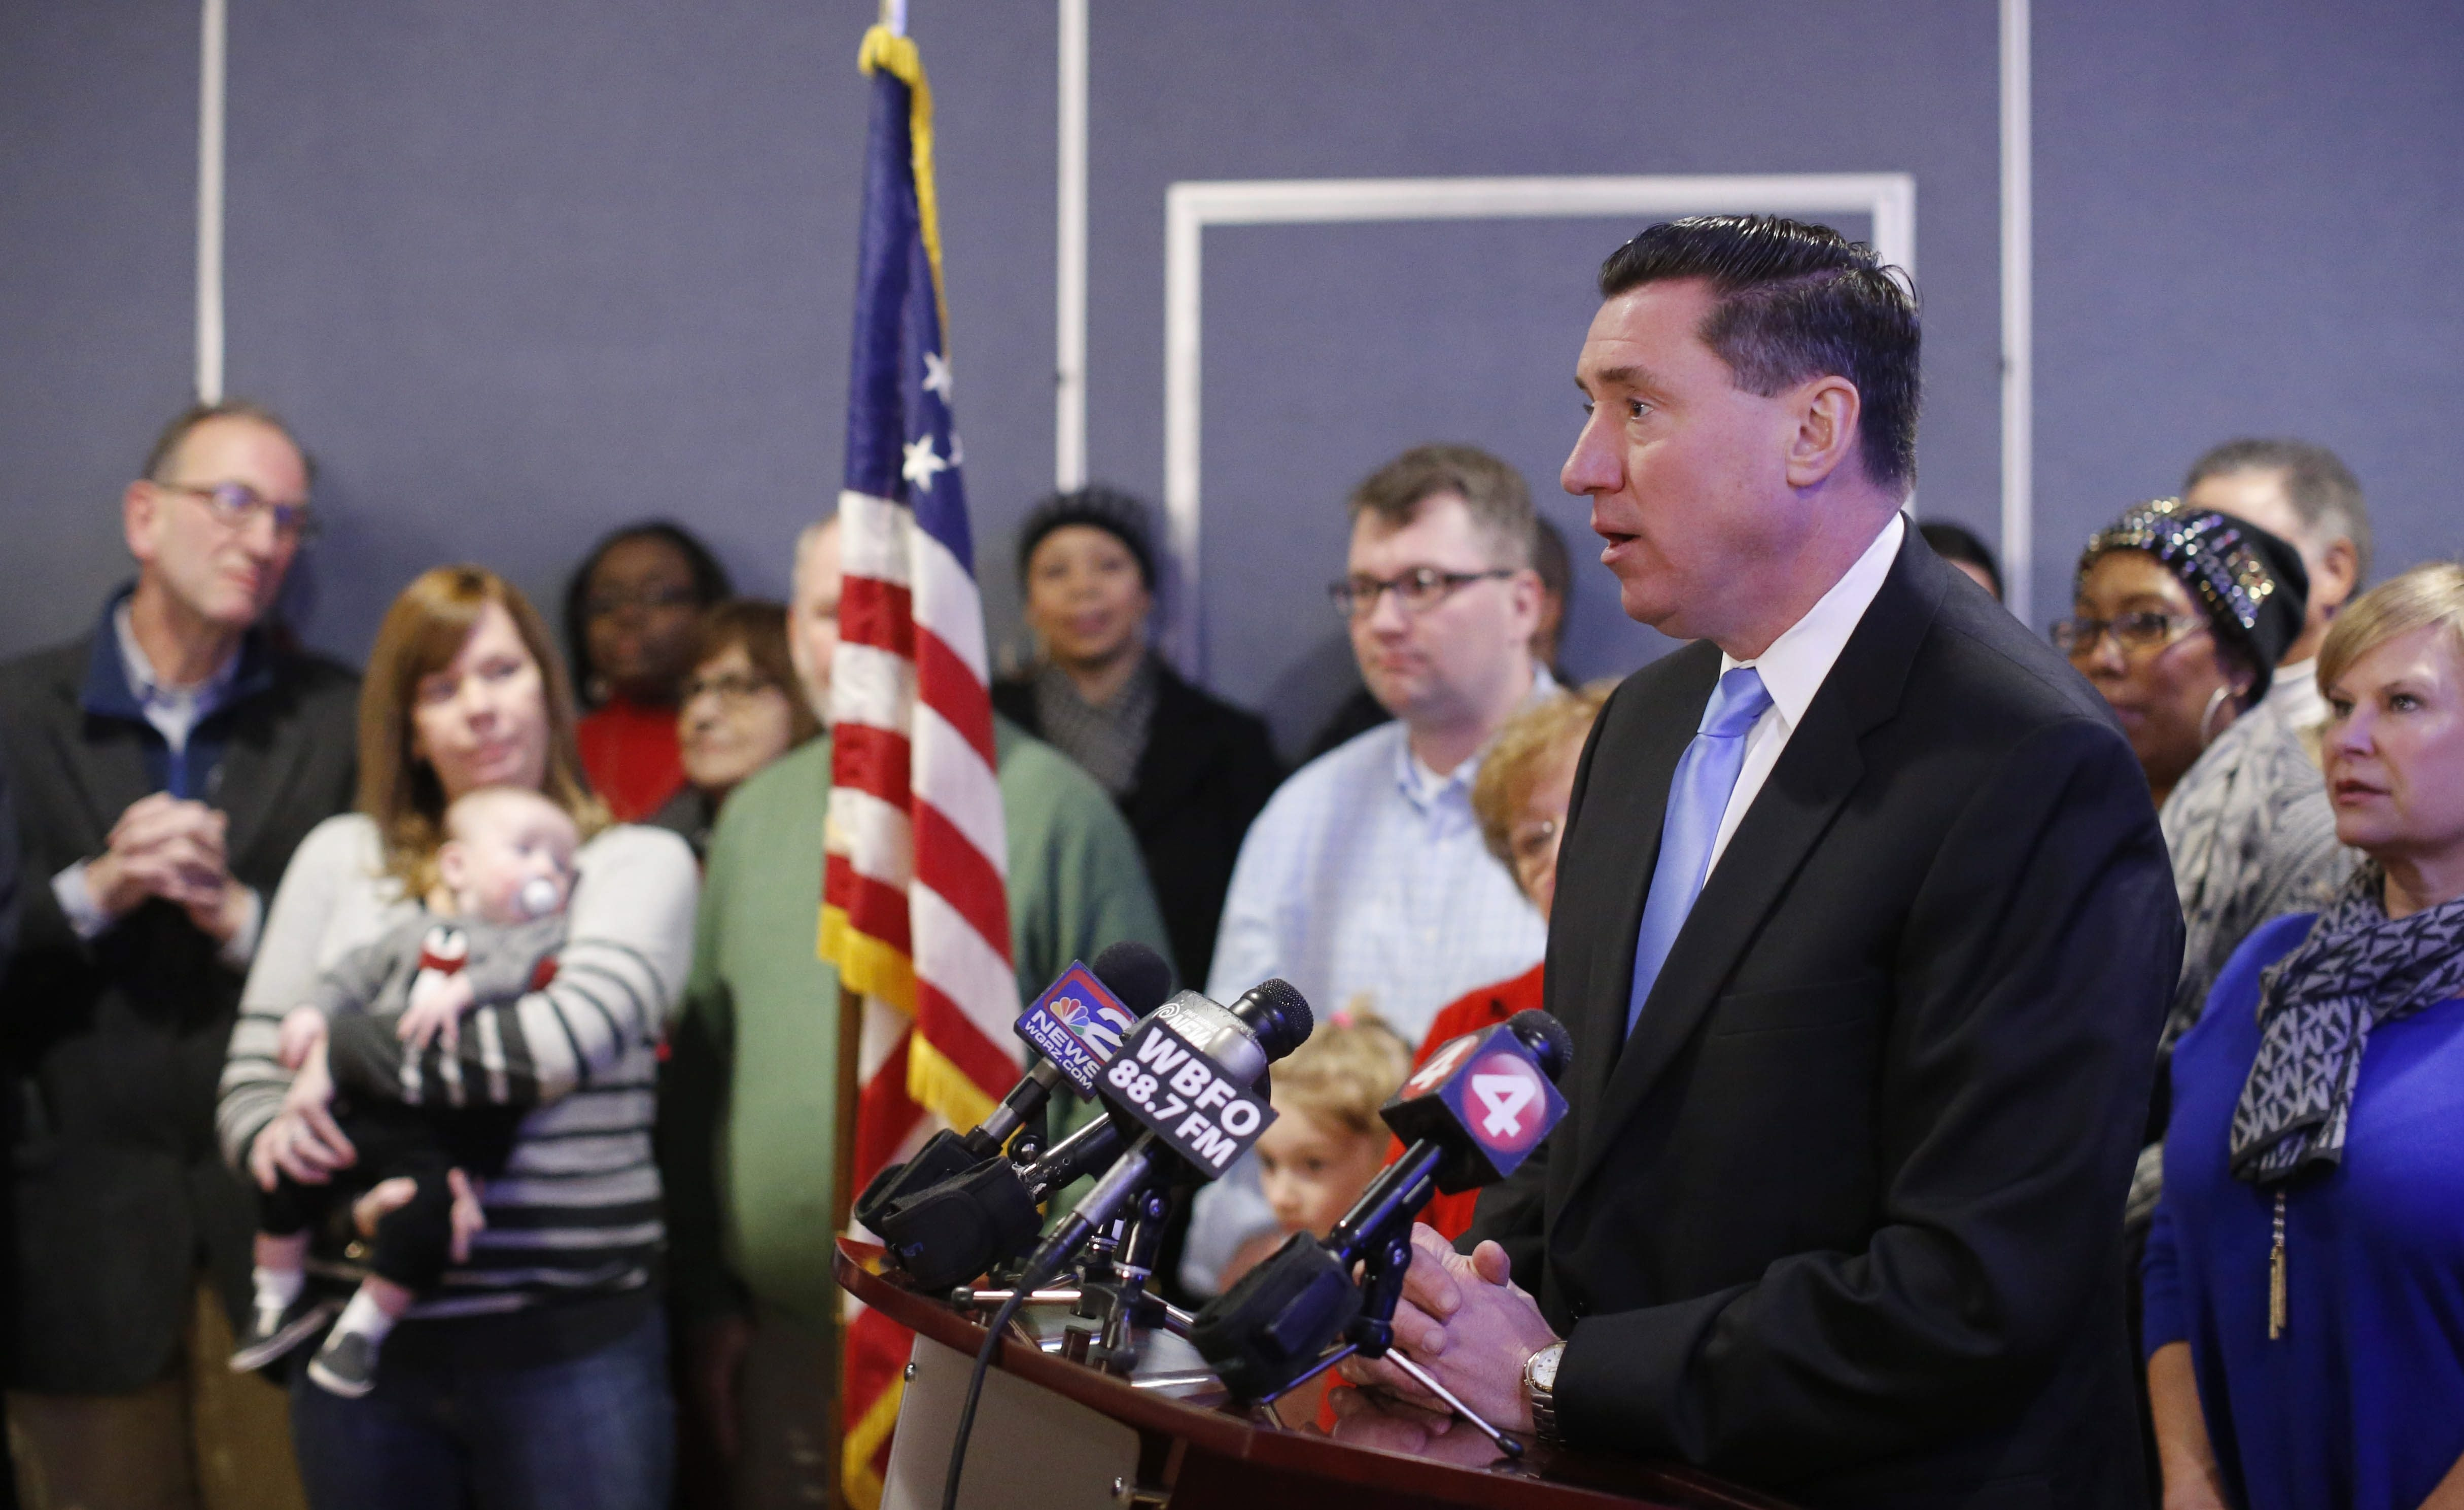 Erie County District Attorney candidate John Flynn addresses the media following his endorsement by the Erie County Democrats.